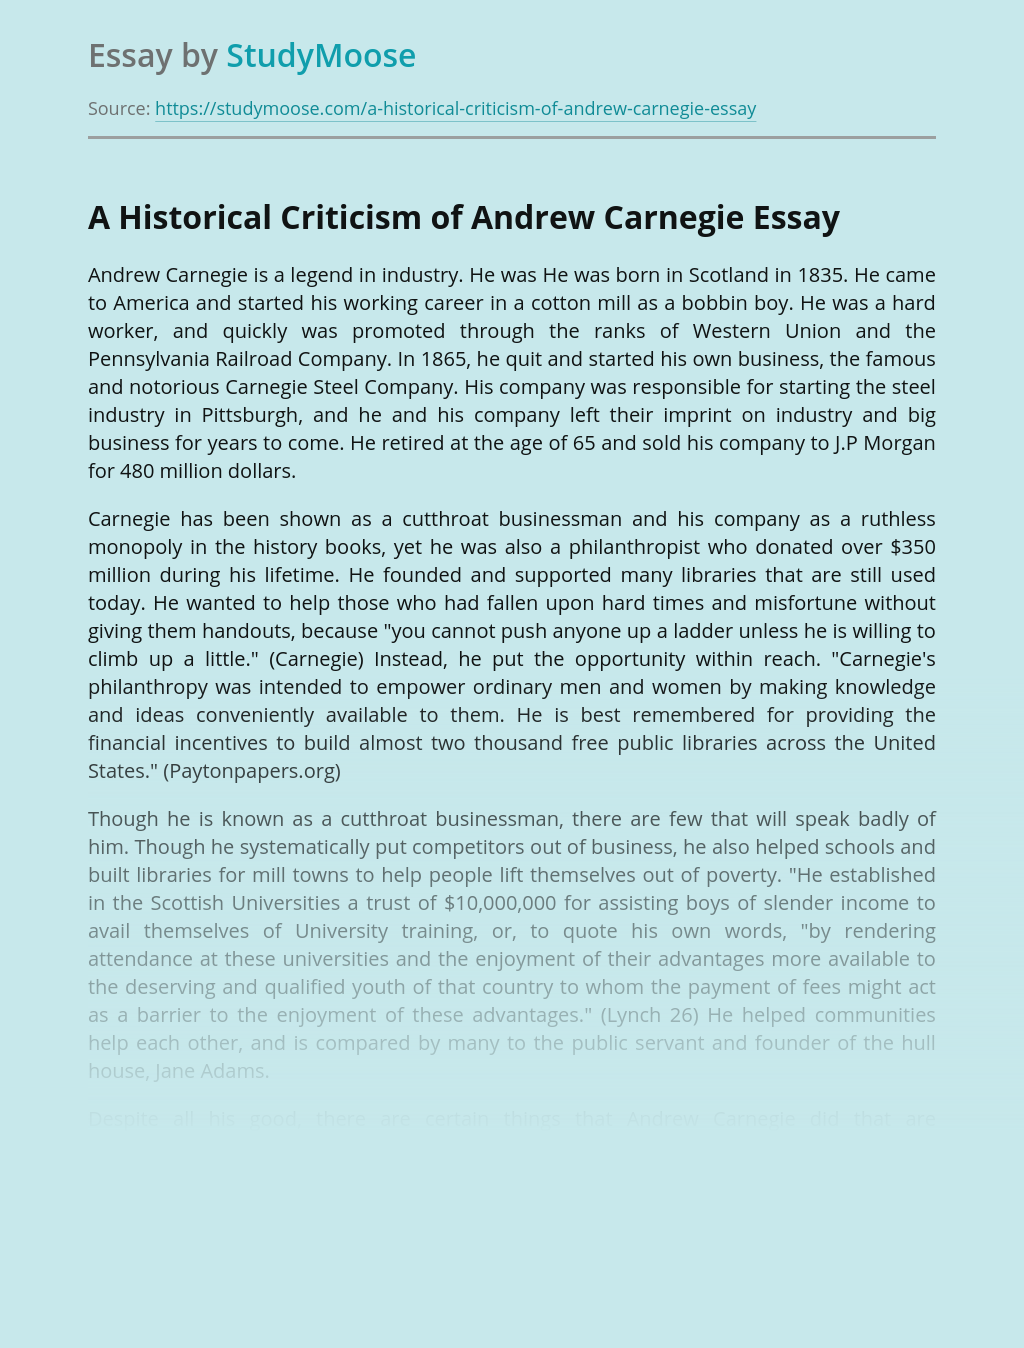 A Historical Criticism of Andrew Carnegie